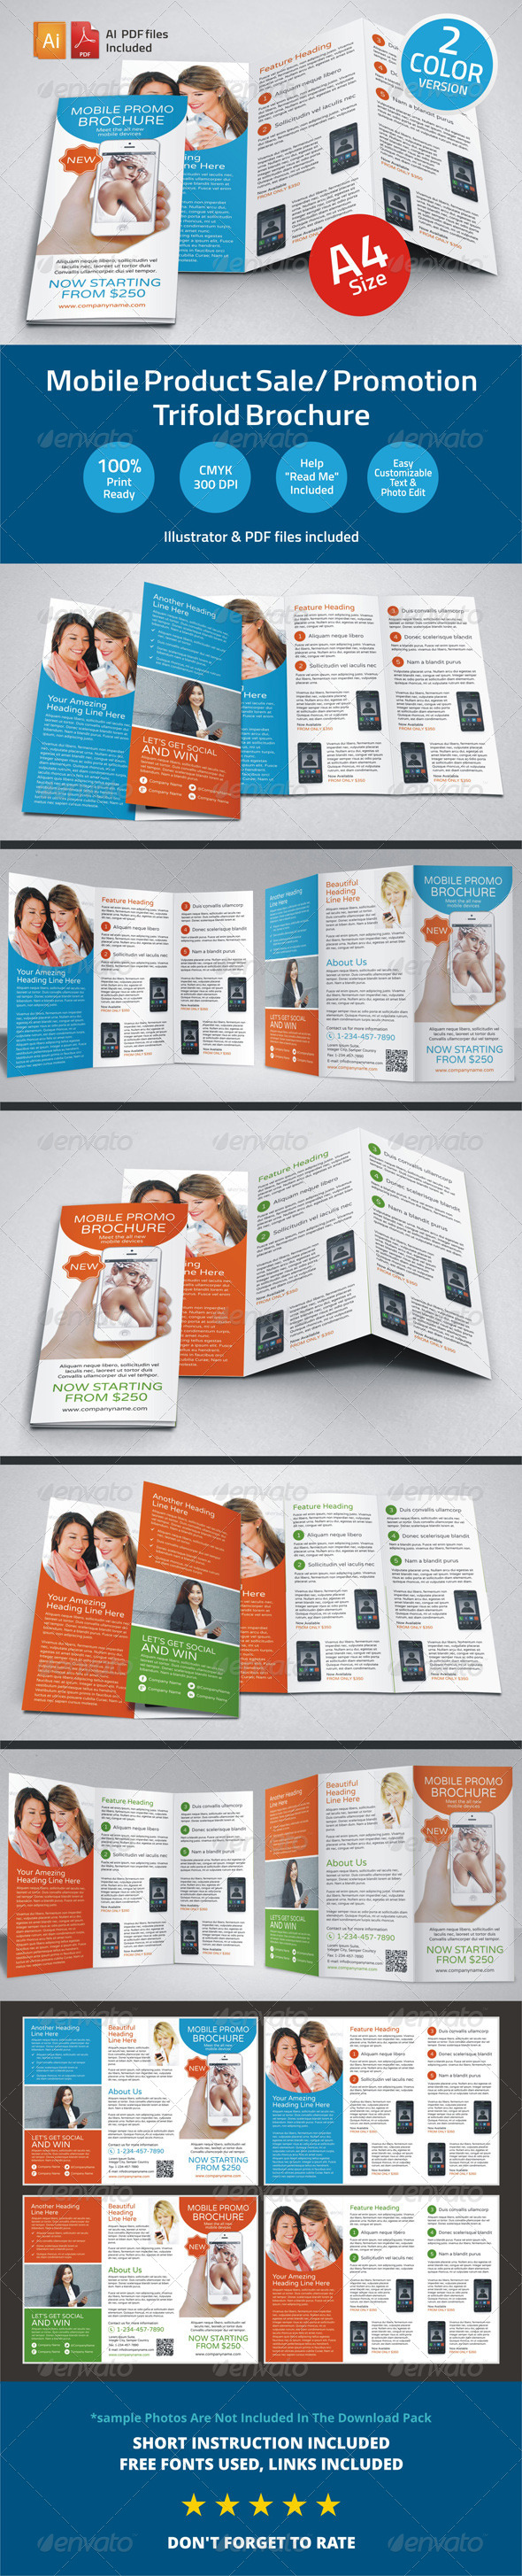 GraphicRiver Mobile Product Sale Promotion Trifold Brochure 6227443